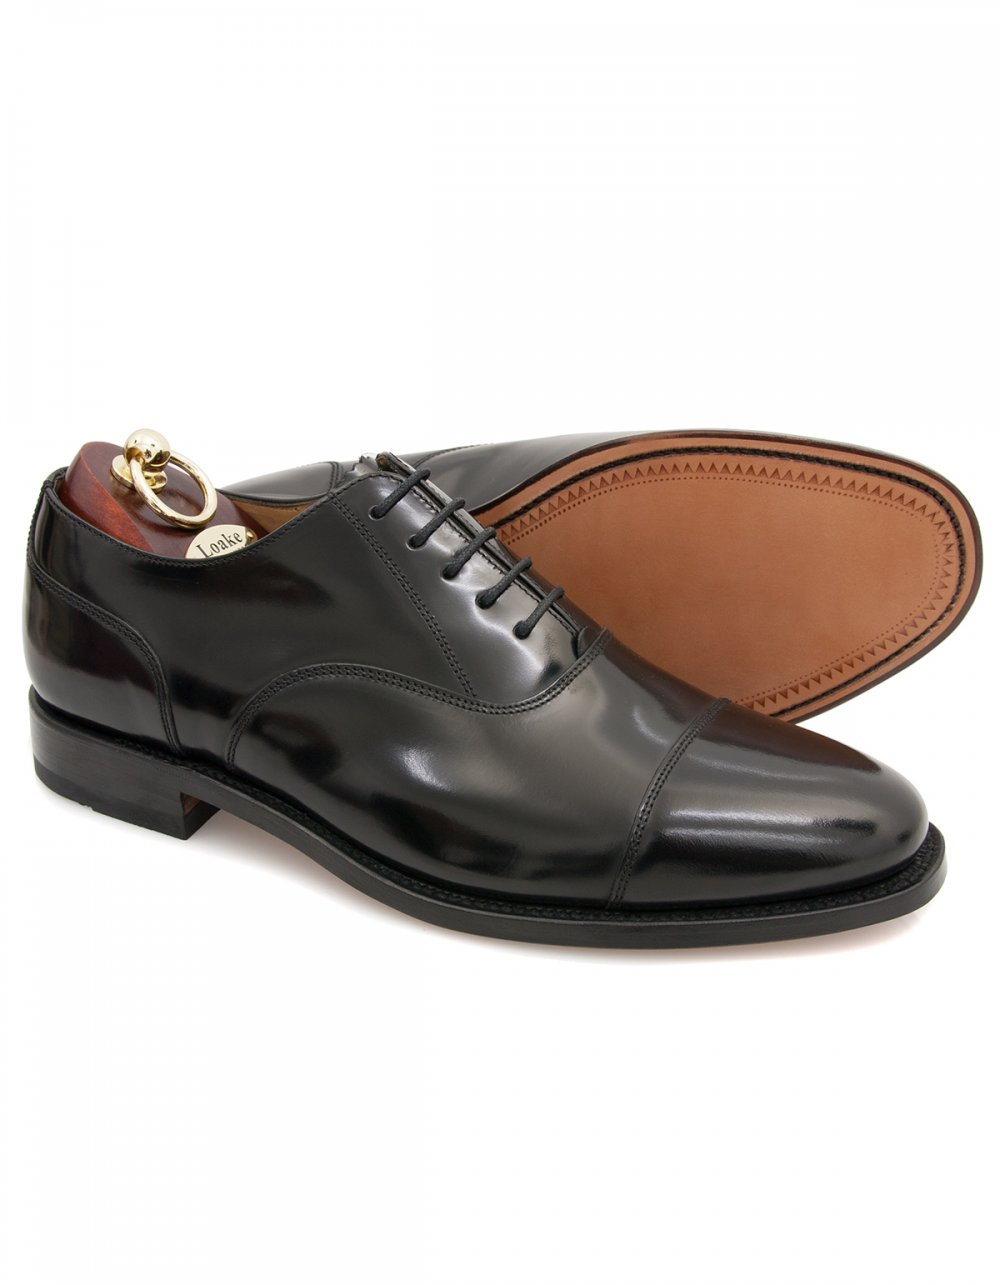 Men's Shoes 1